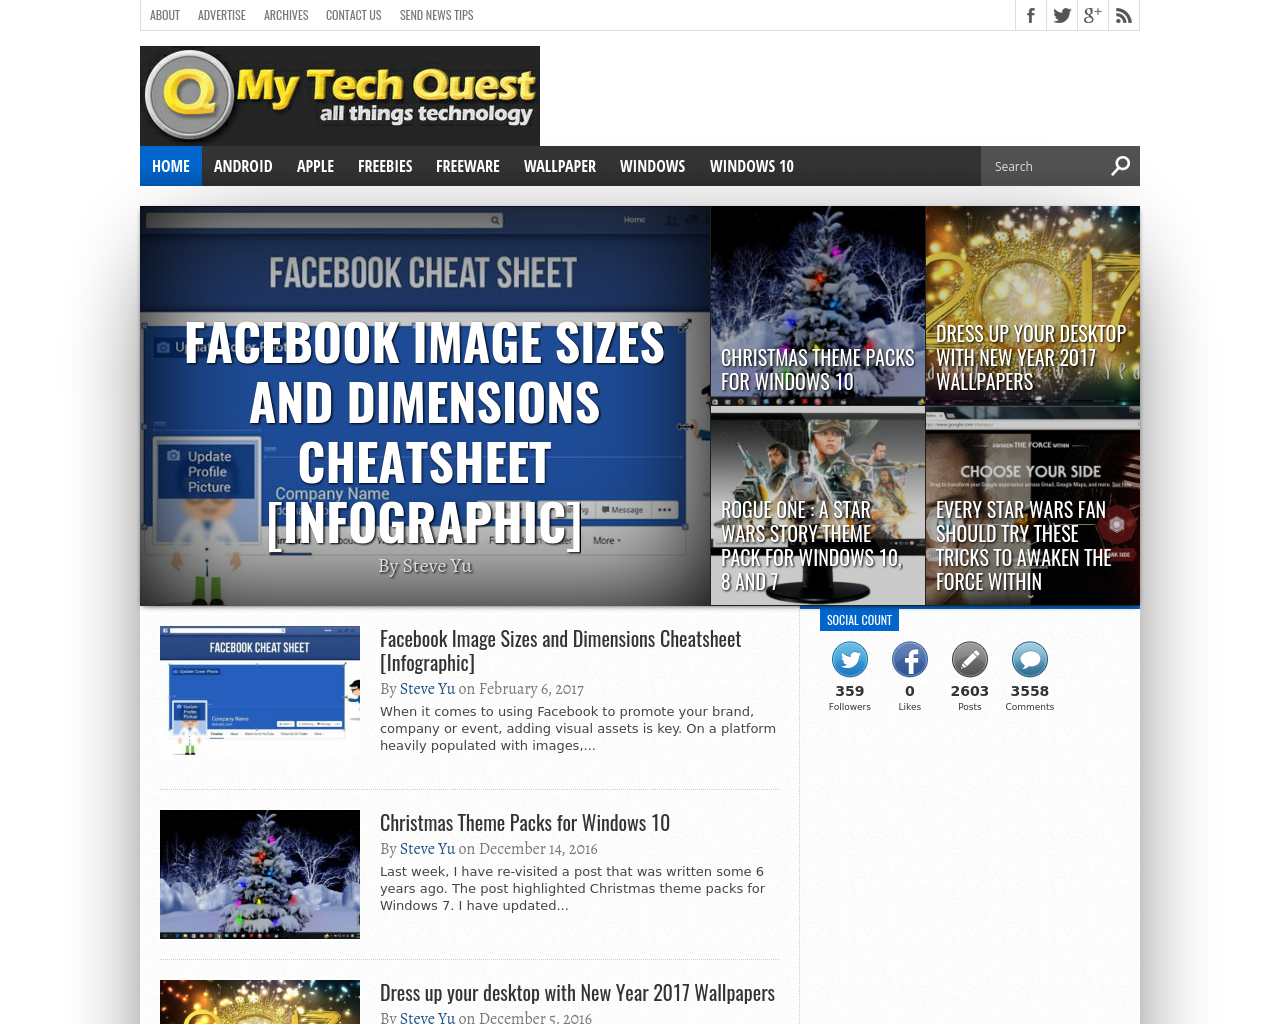 My-Tech-Quest-Advertising-Reviews-Pricing